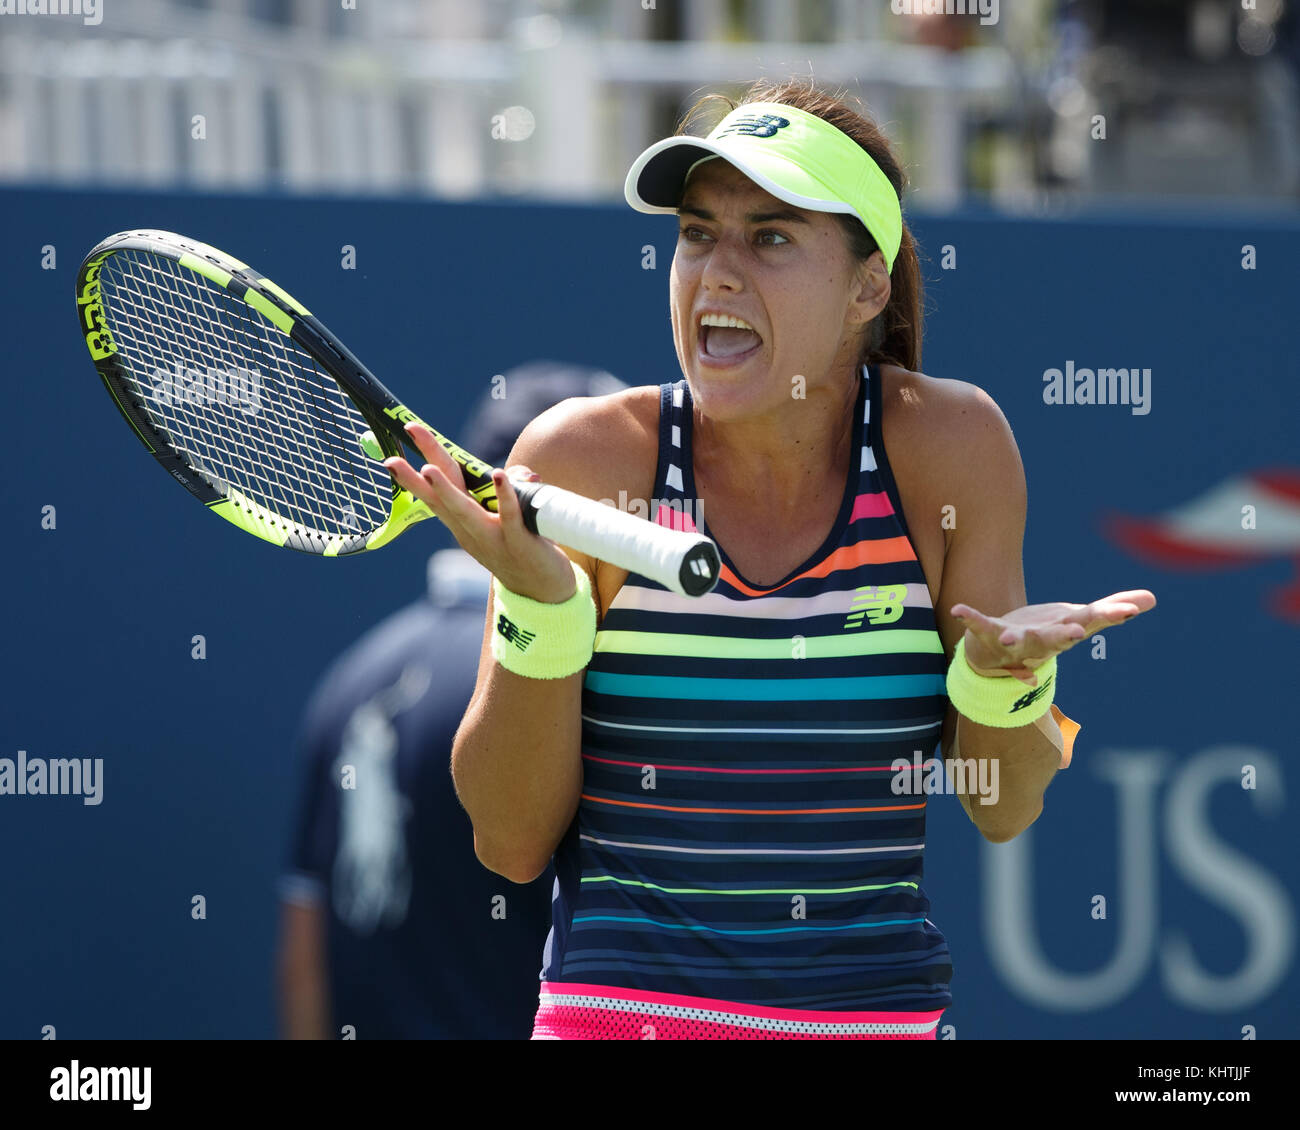 Romanian tennis player SORANA CIRSTEA (ROU) getting emotional during  women's singles match in US Open 2017 - Stock Image